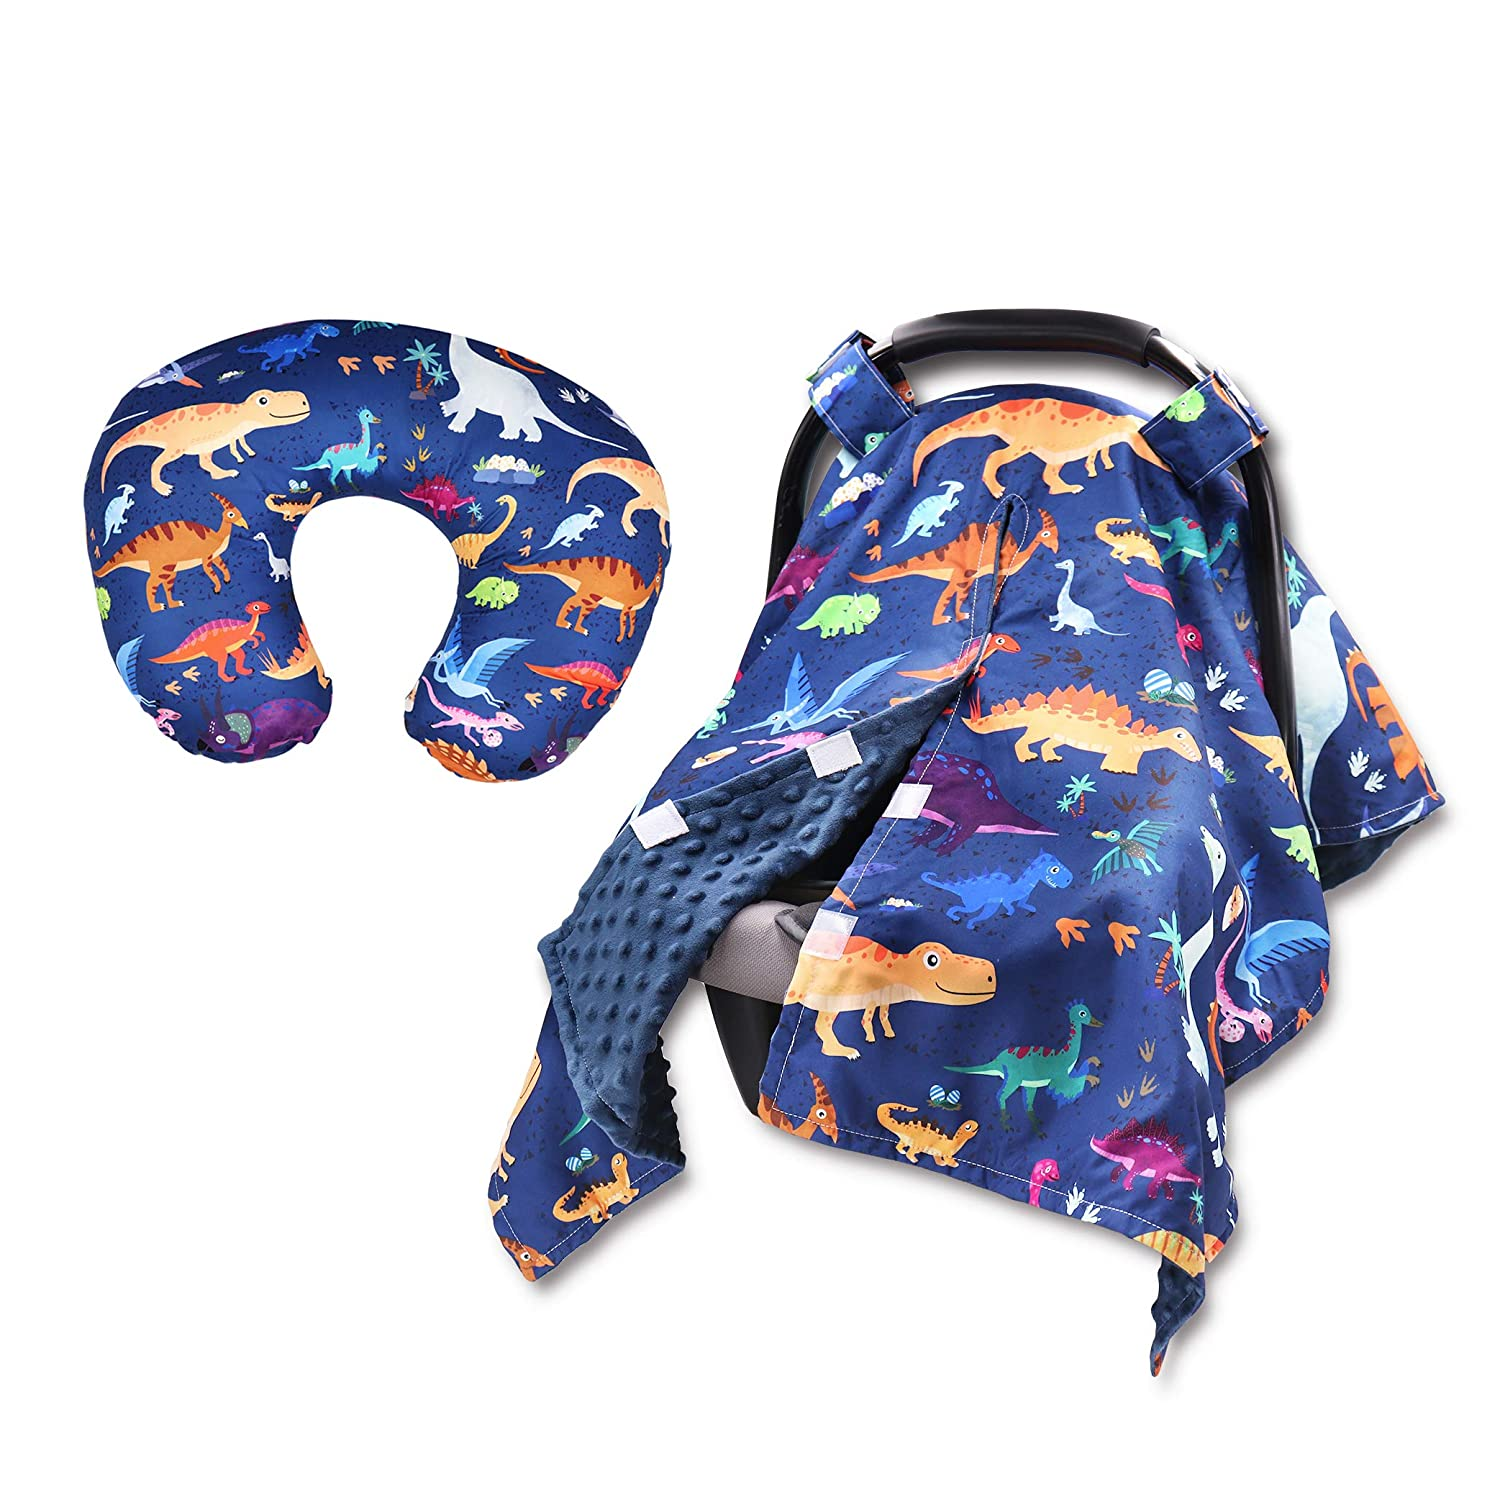 Dinosaur Financial sales sale Baby Car Seat Canopy and 2 Cover Nursing Pillow Pack Import Se